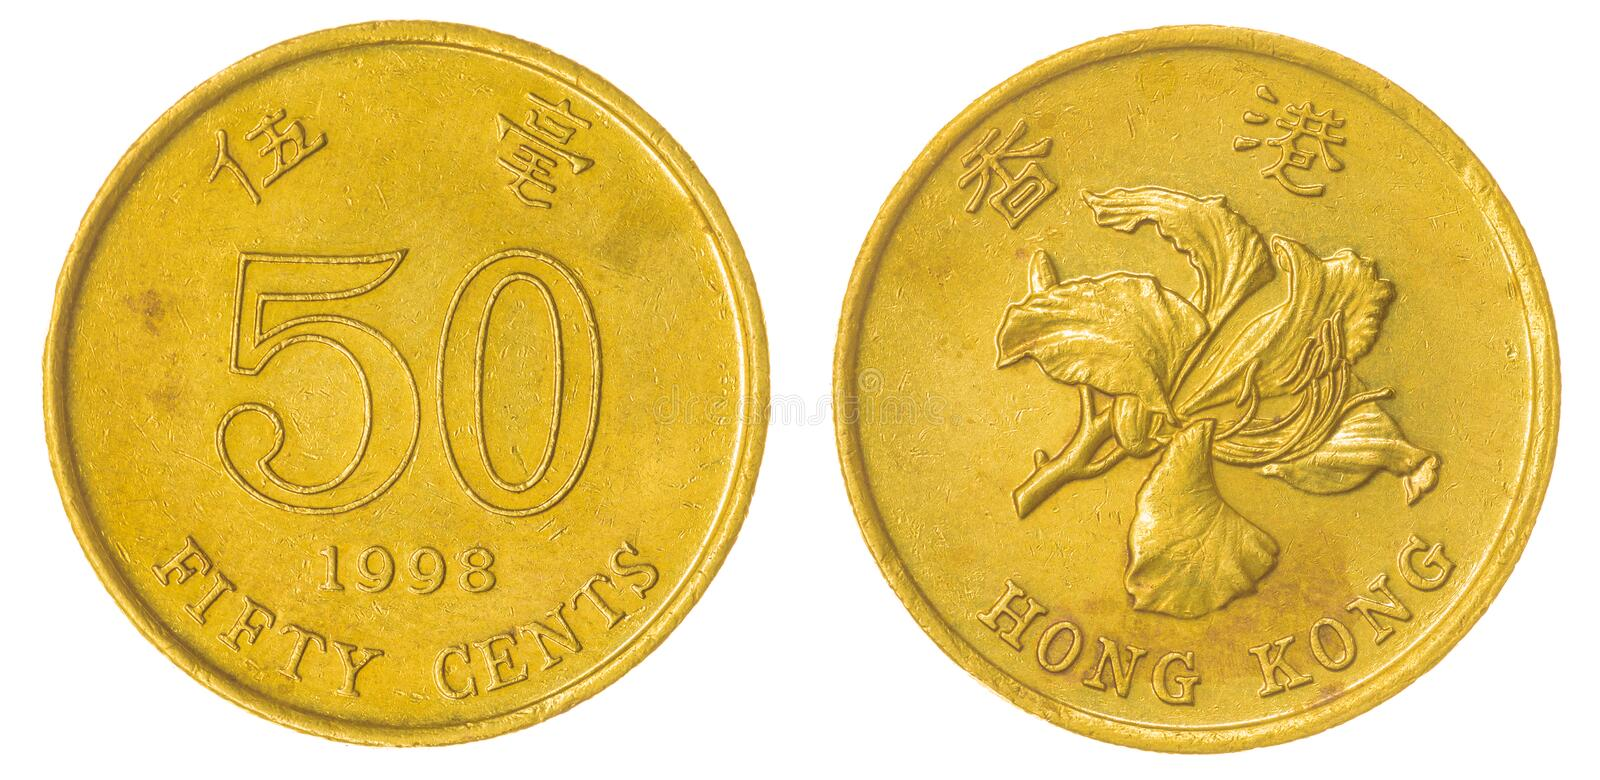 50 cents 1998 coin isolated on white background, Hong Kong. Brass plated 50 cents 1998 coin isolated on white background, Hong Kong stock image